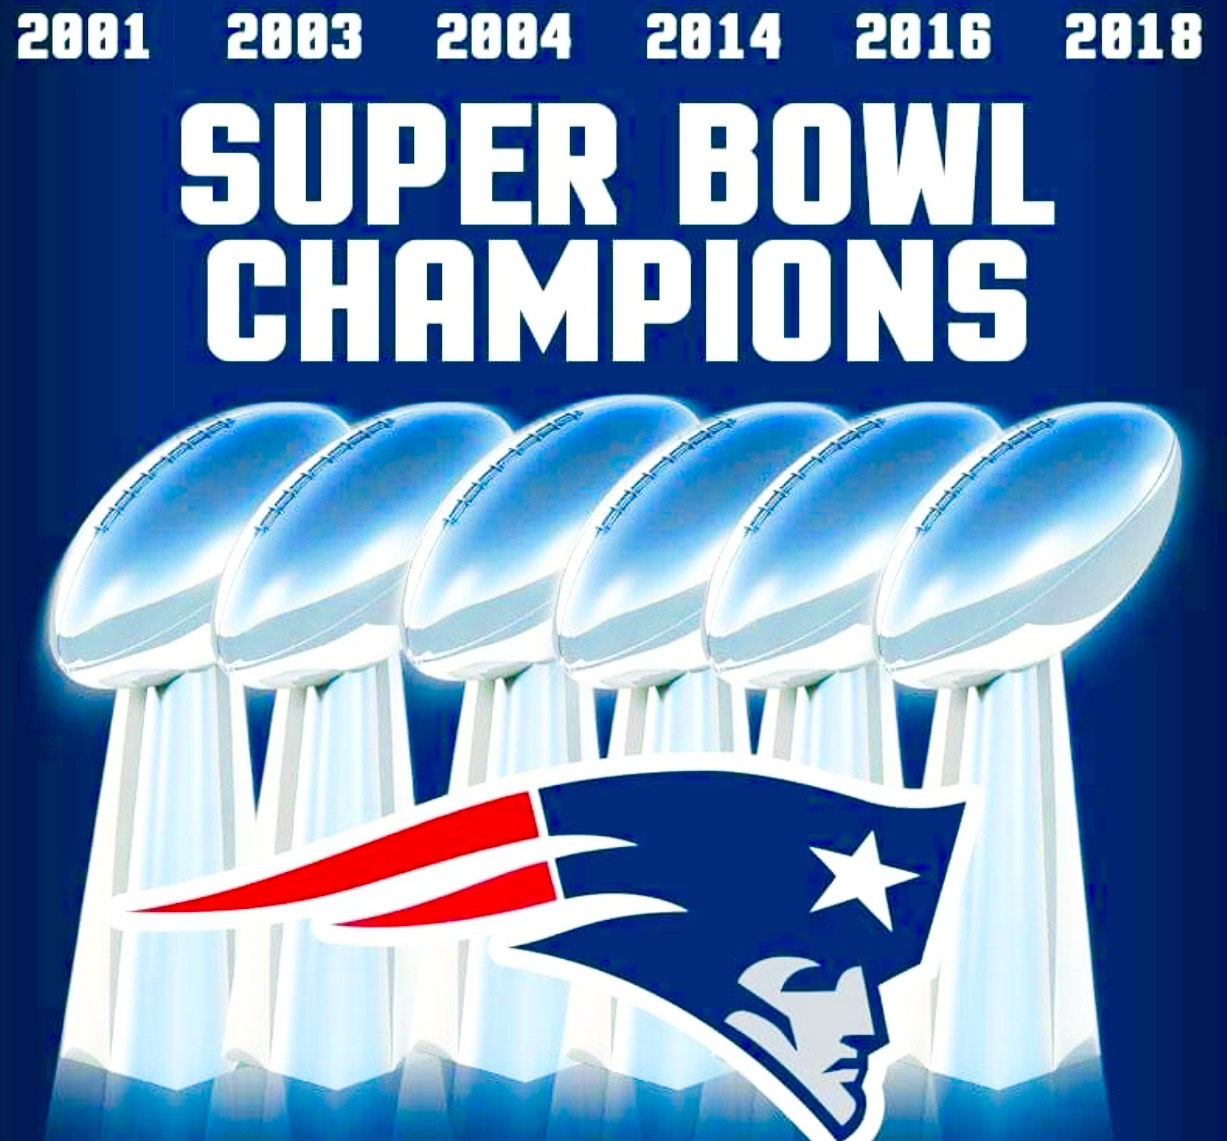 Robert Kraft, Patriots Robert Kraft, Robert Kraft Billionaire, Keith Middlebrook, Keith Middlebrook Pro Sports, Success Wealth Prosperity, YouTube.com Keith Middlebrook, Videos Keith Middlebrook, Keith Middlebrook Foundation, Charity for Kids, N355KM, Keith Middlebrook Super Entrepreneur Icon, Keith Middlebrook Brand, Keith Middlebrook Real Iron Man, Keith Middlebrook Net Worth, Keith Middlebrook Bodybuilder, Keith Middlebrook Enterprise, Success, Floyd Mayweather, Super Bowl Champions New England Patriots, Patriots Super Bowl Champions,